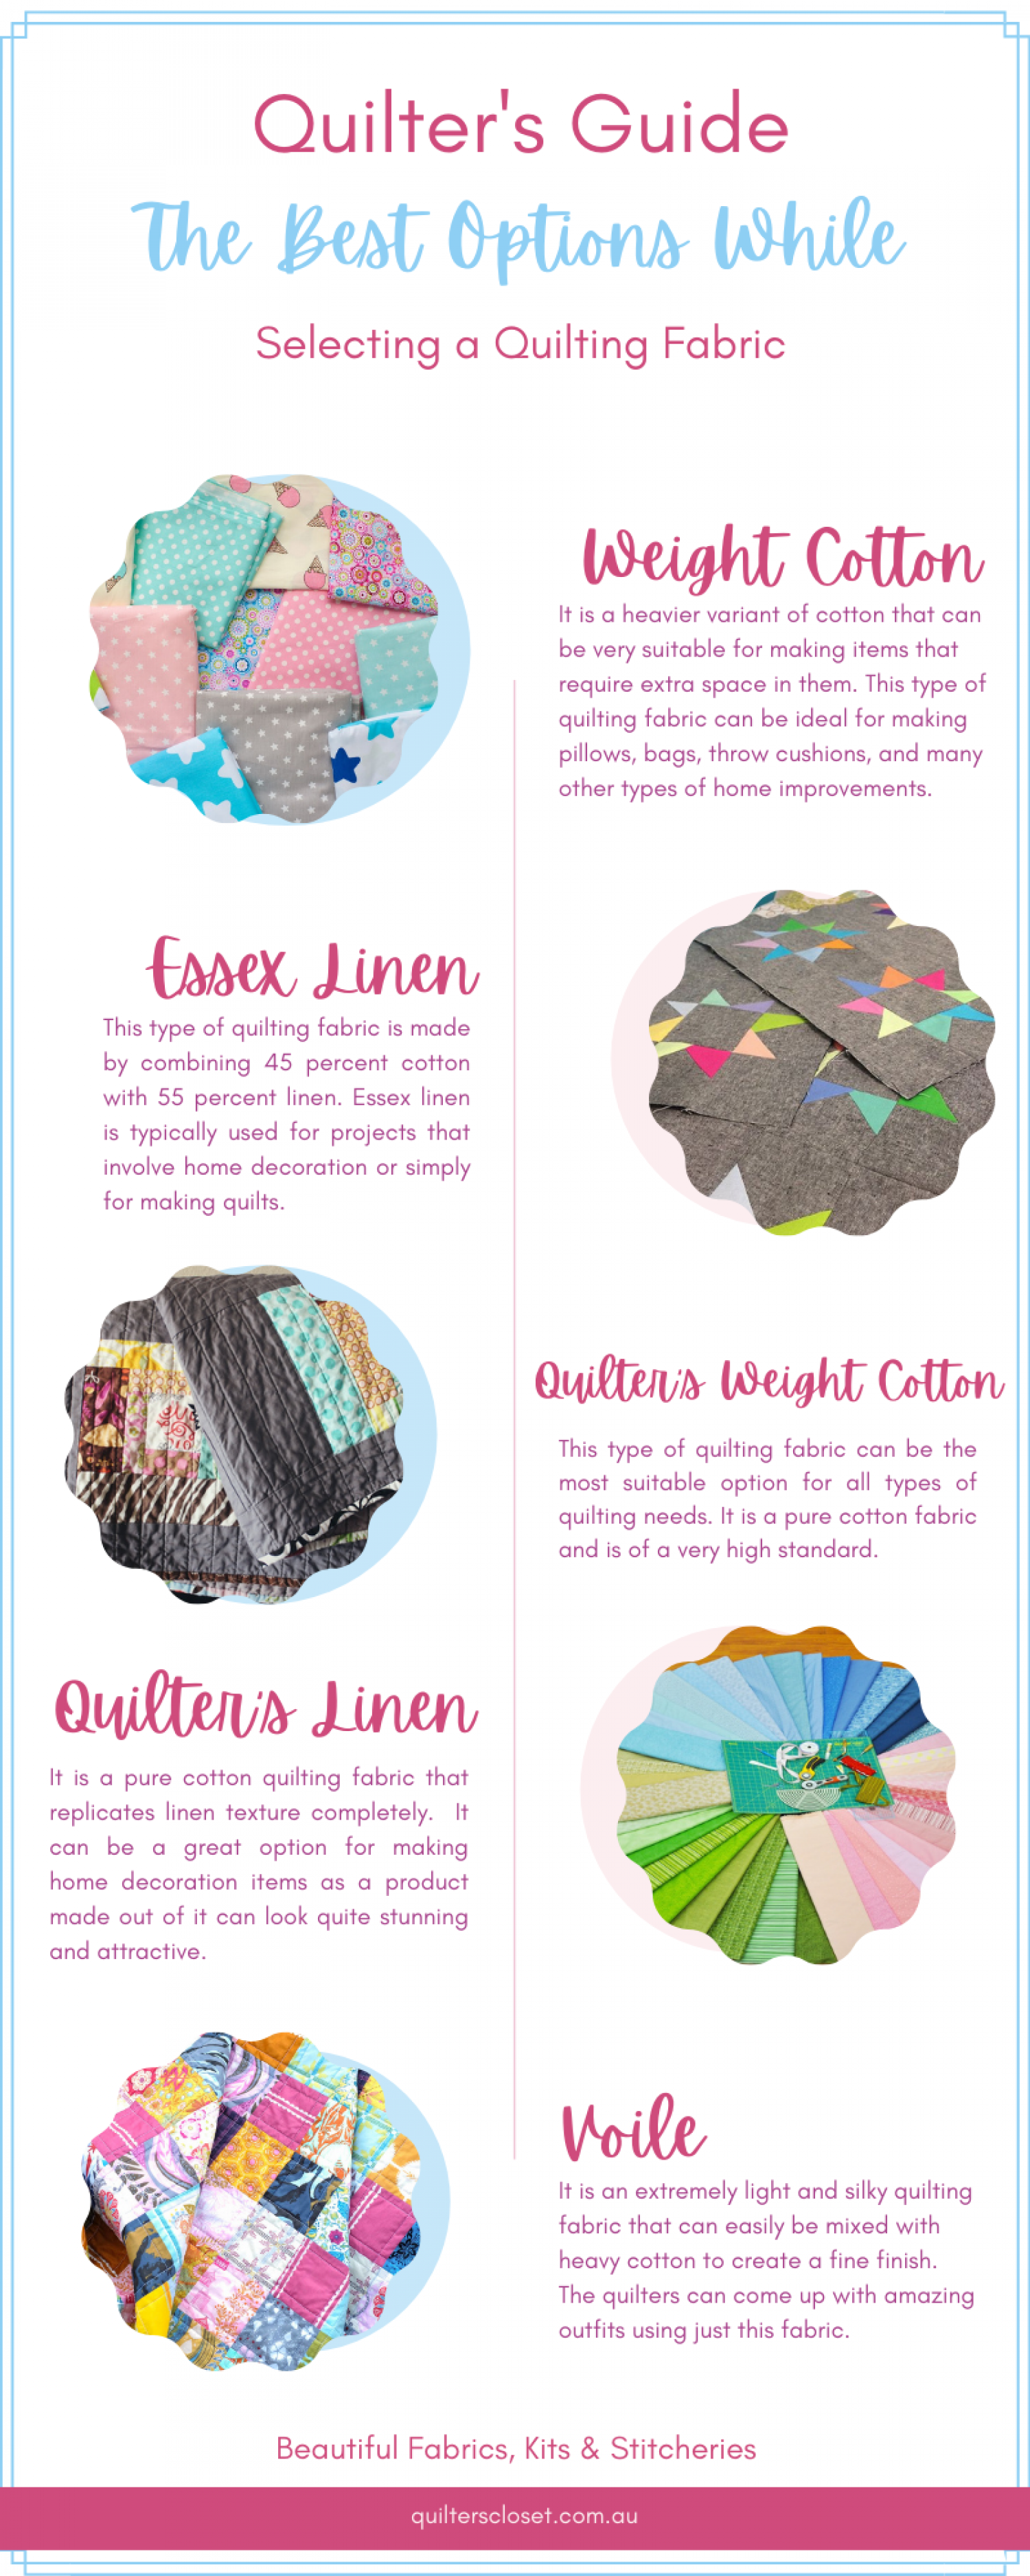 The Best Options While Selecting a Quilting Fabric Infographic